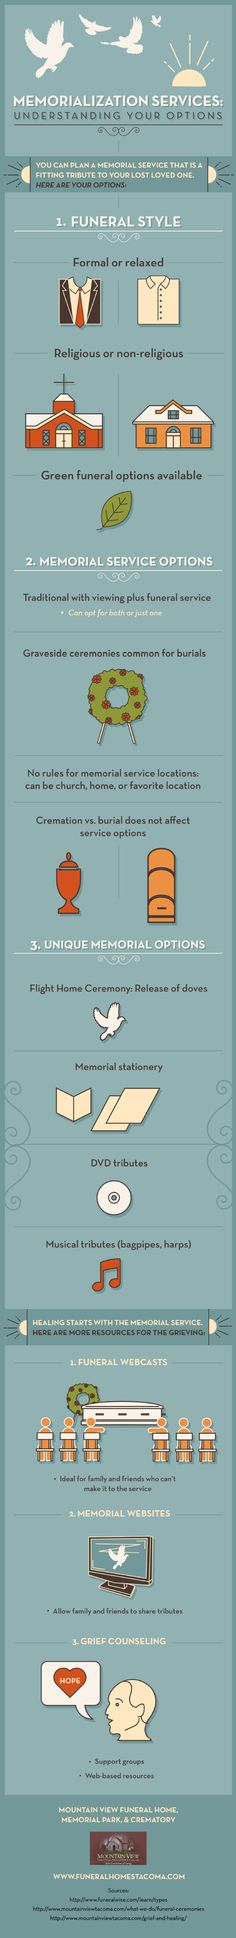 Cremations and burials are both popular options, but the choice does not affect service options. Find out how to put together a touching service for your lost loved one by taking a look at this infographic from a funeral home in Tacoma.